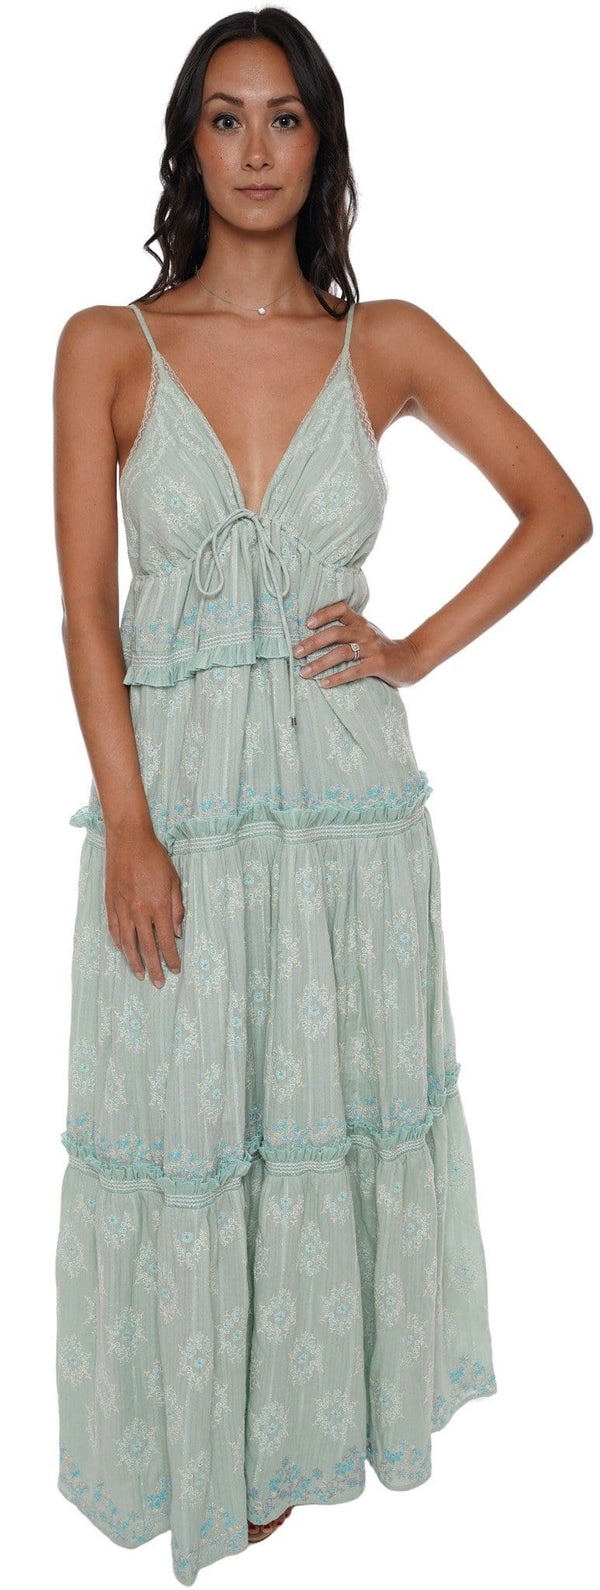 Jonathan Simkhai - Anniston Bohemian Cotton Maxi Dress